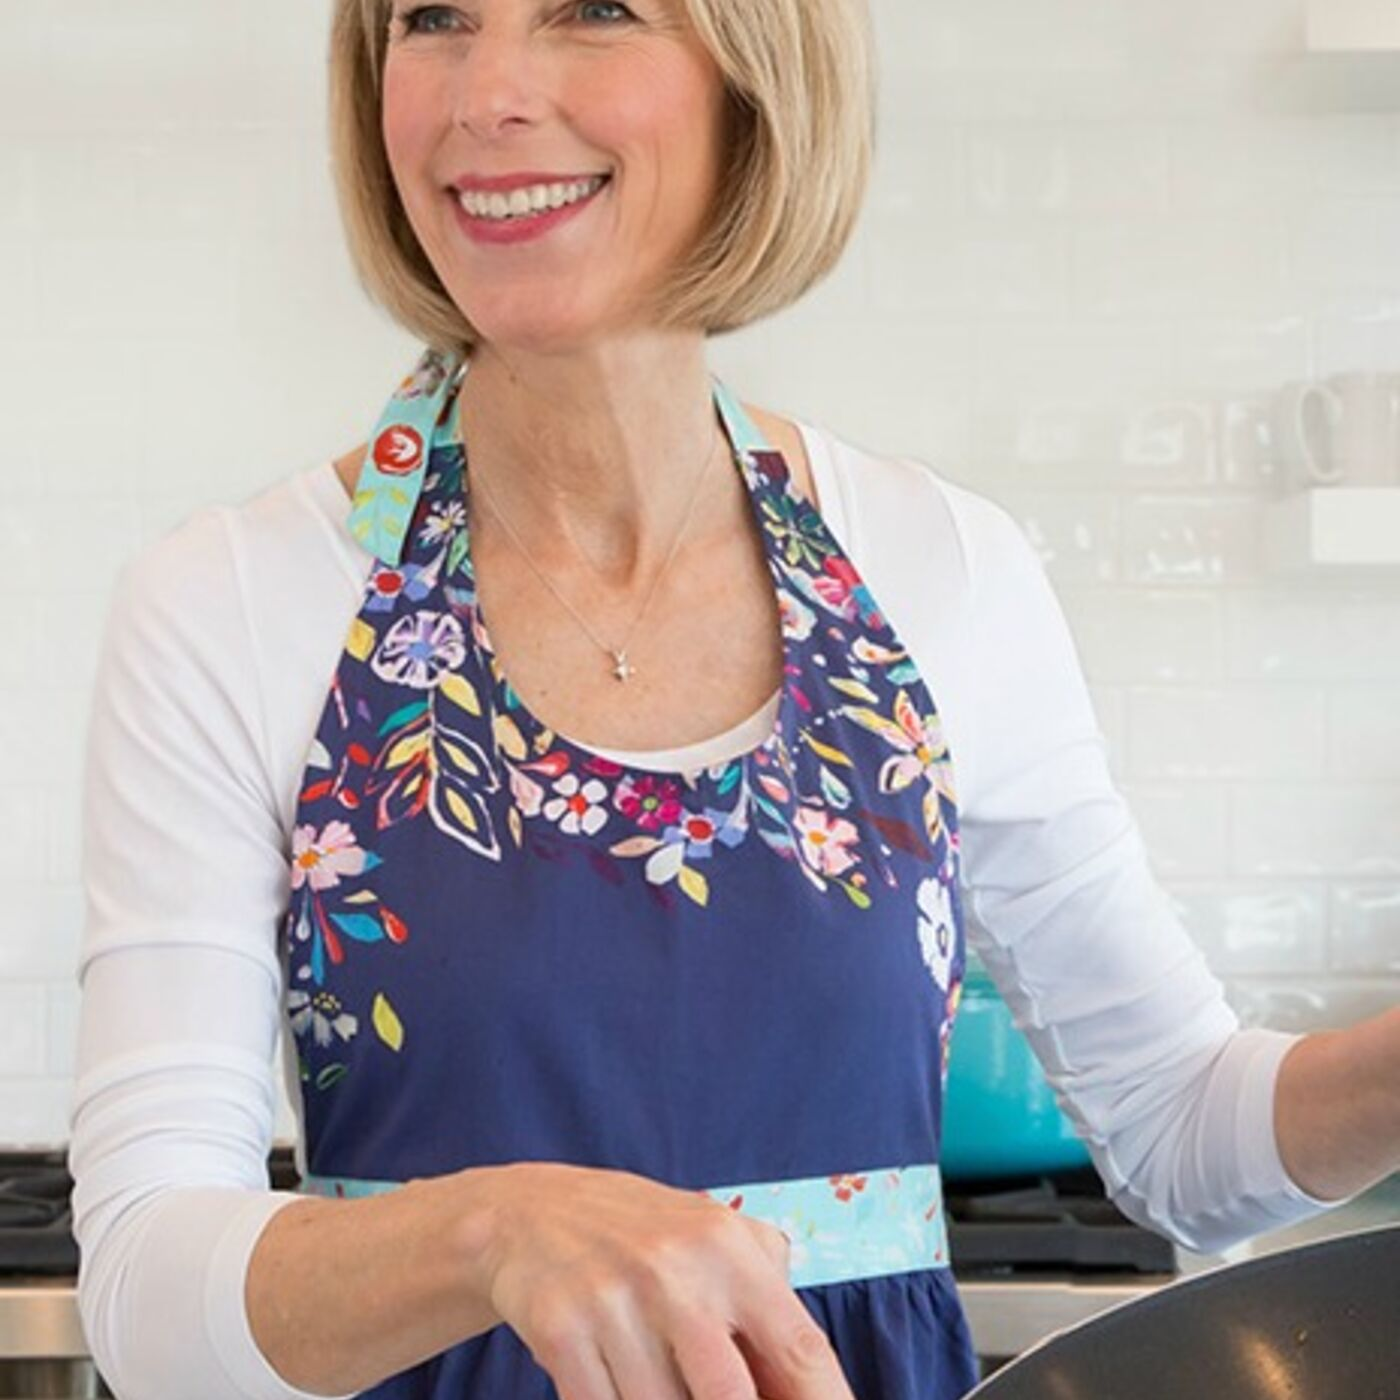 Episode 28: Family Cooking with Liz Weiss